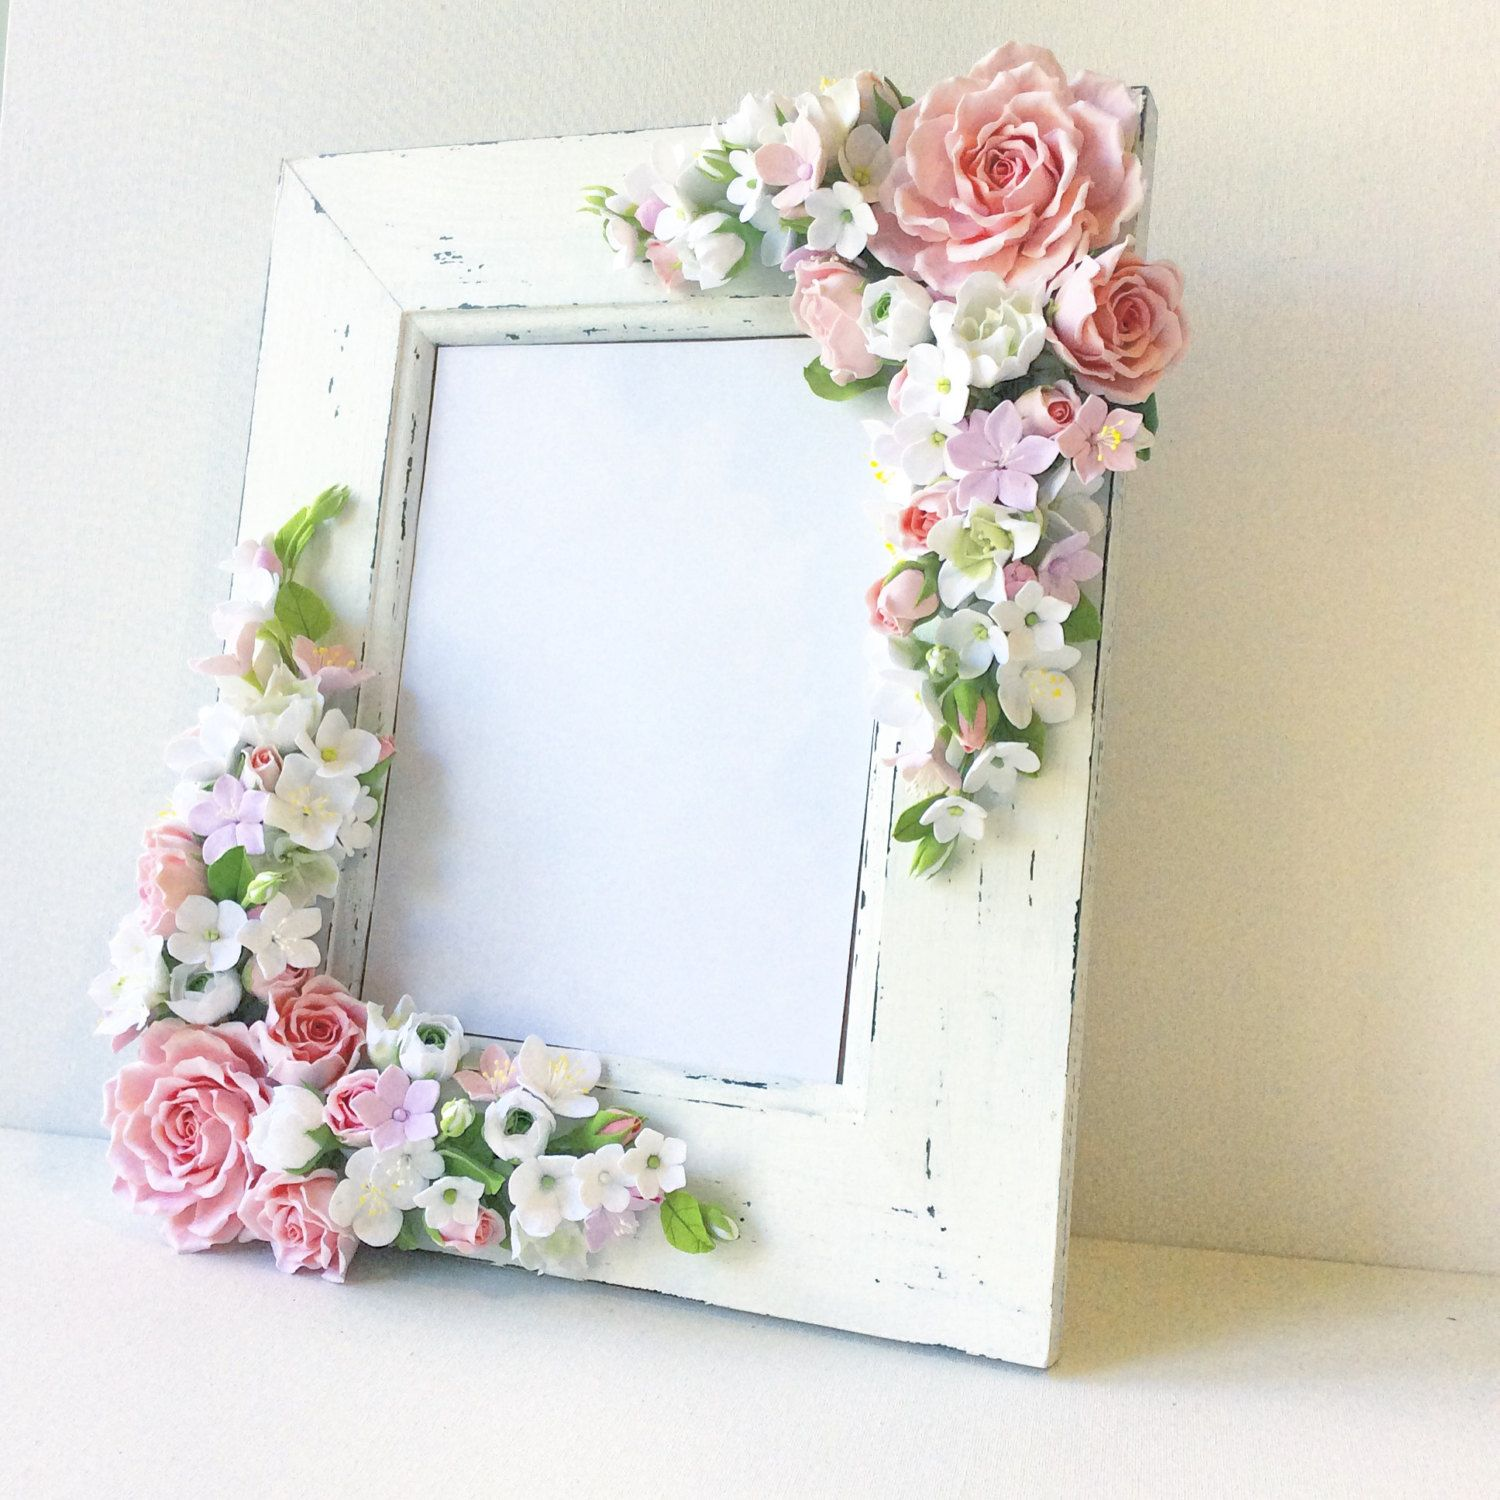 Deposit Payment Wedding Frame For Wedding Photo Polymer Etsy In 2020 Polymer Clay Flowers Wedding Frames Clay Flowers